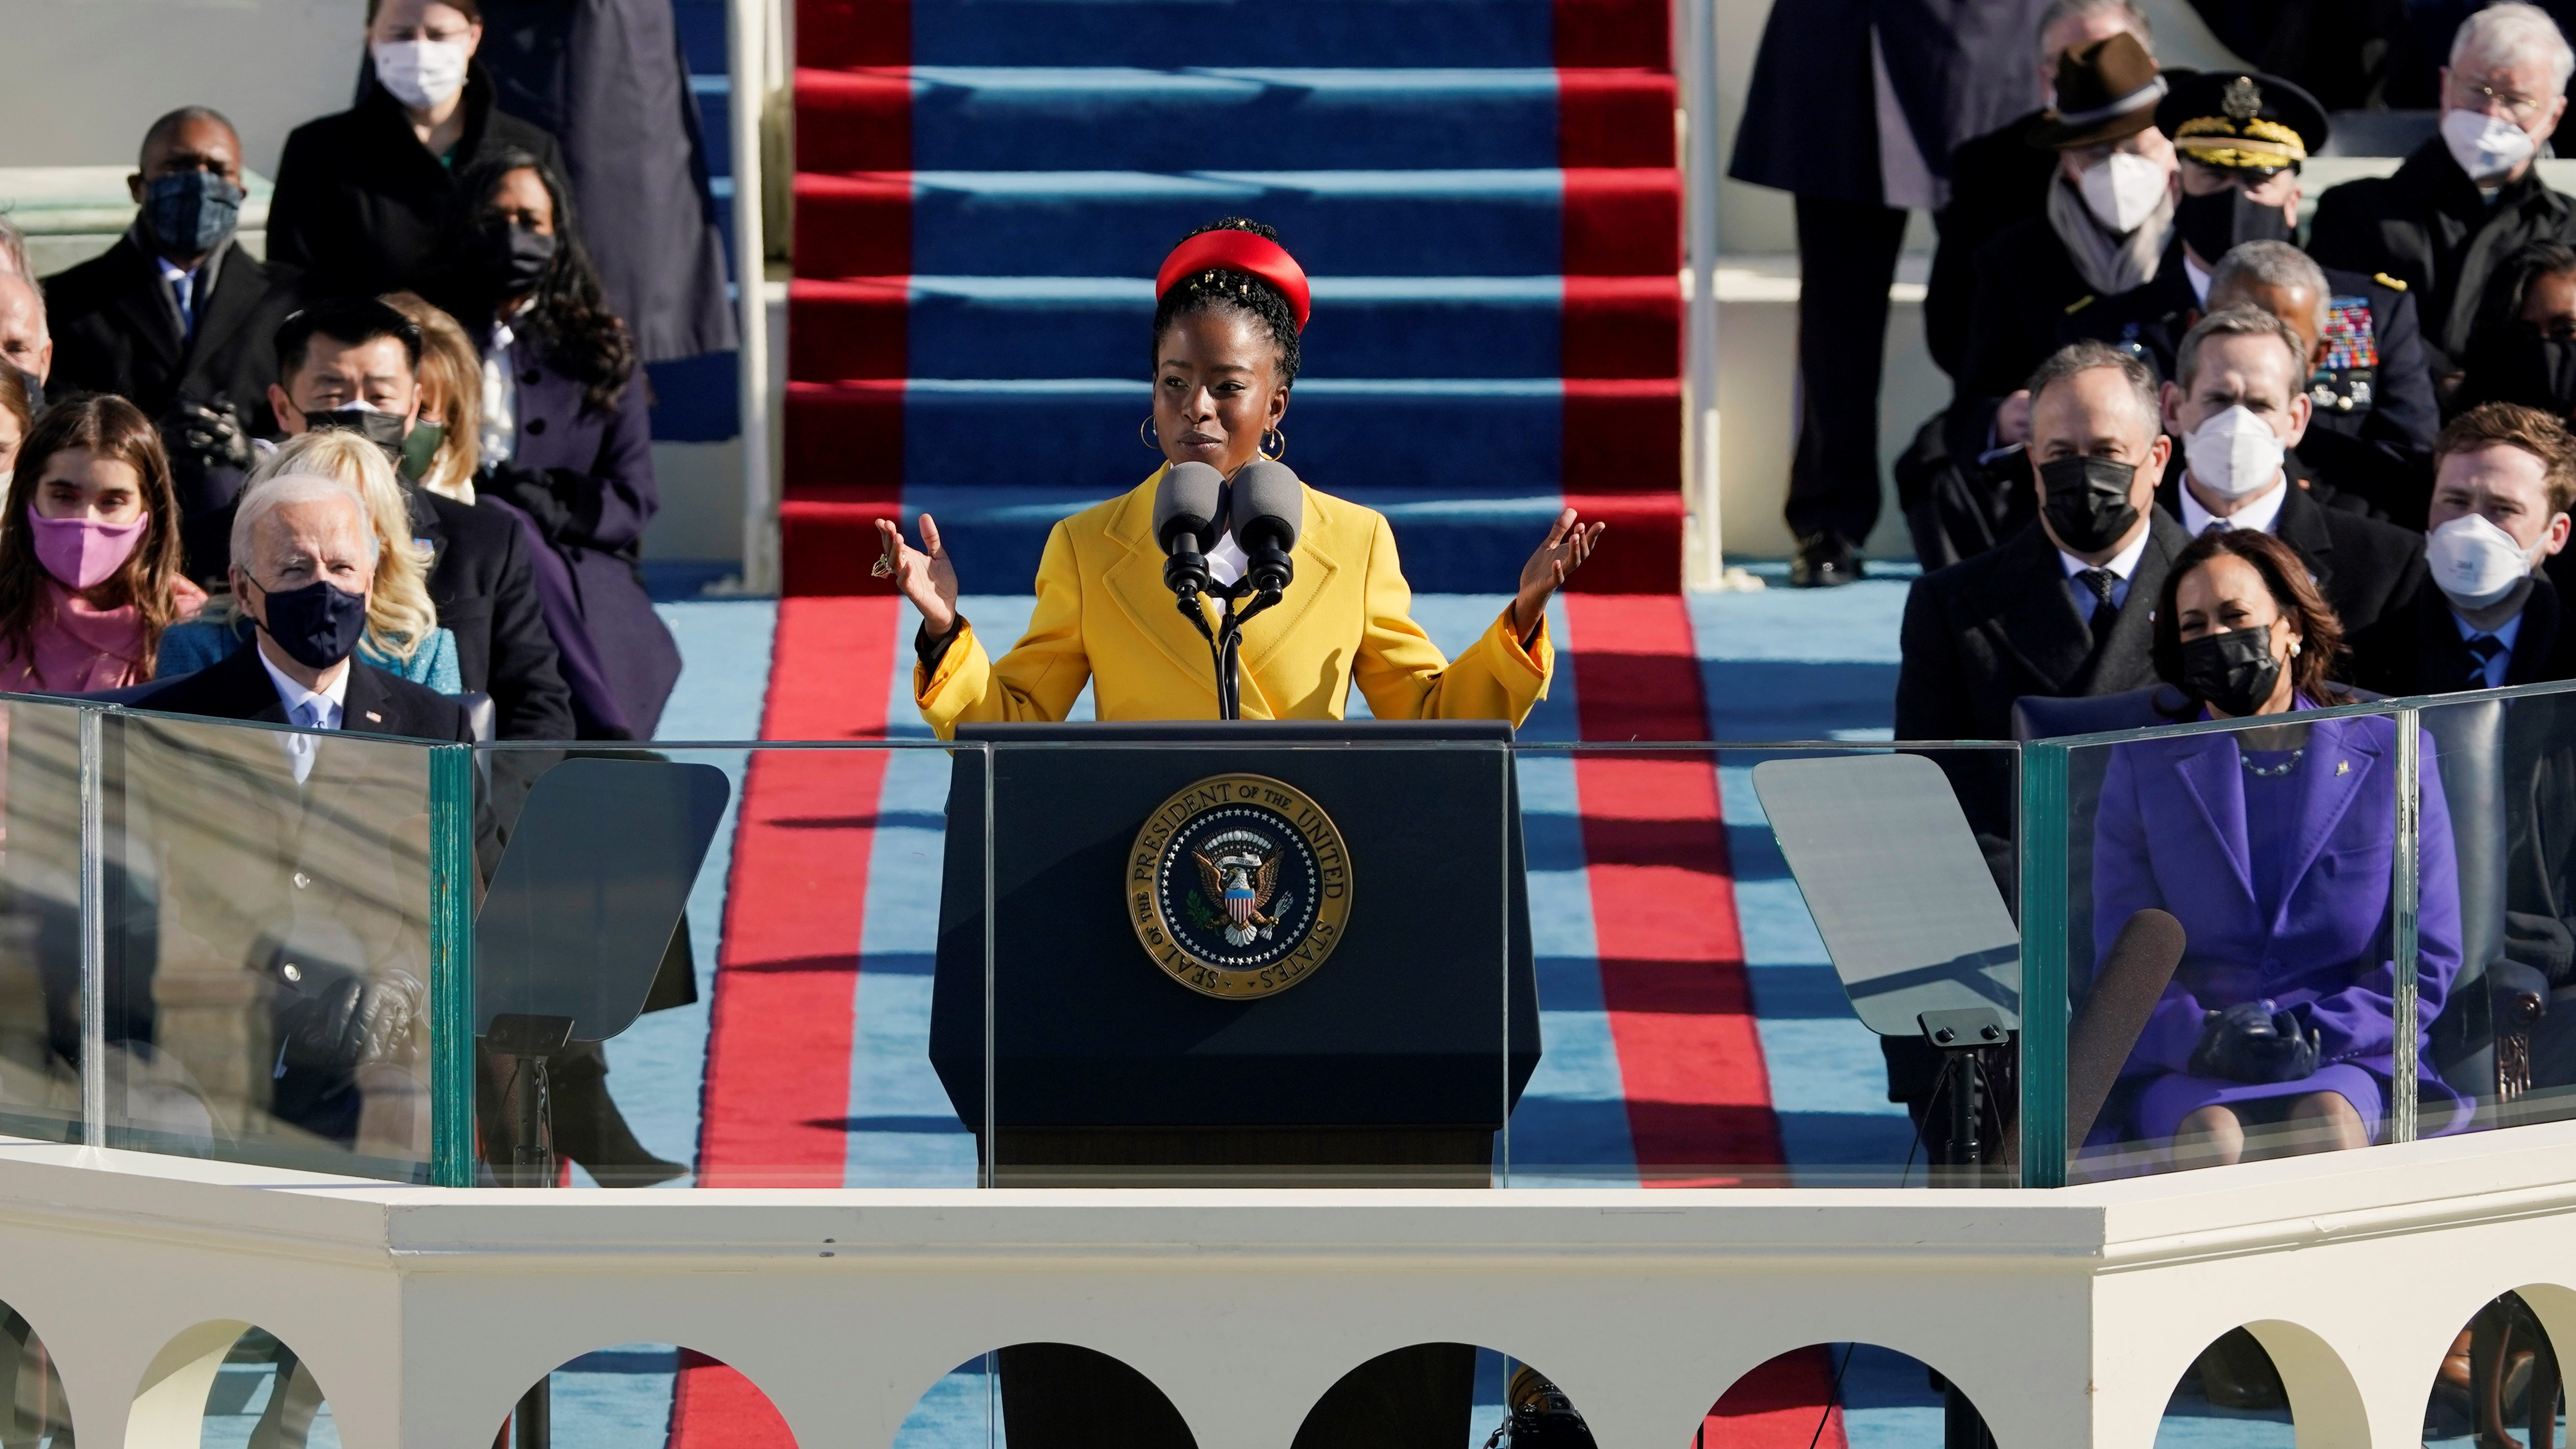 Poet Amanda Gorman reads a poem during the 59th Presidential Inauguration at the U.S. Capitol in Washington January 20, 2021.